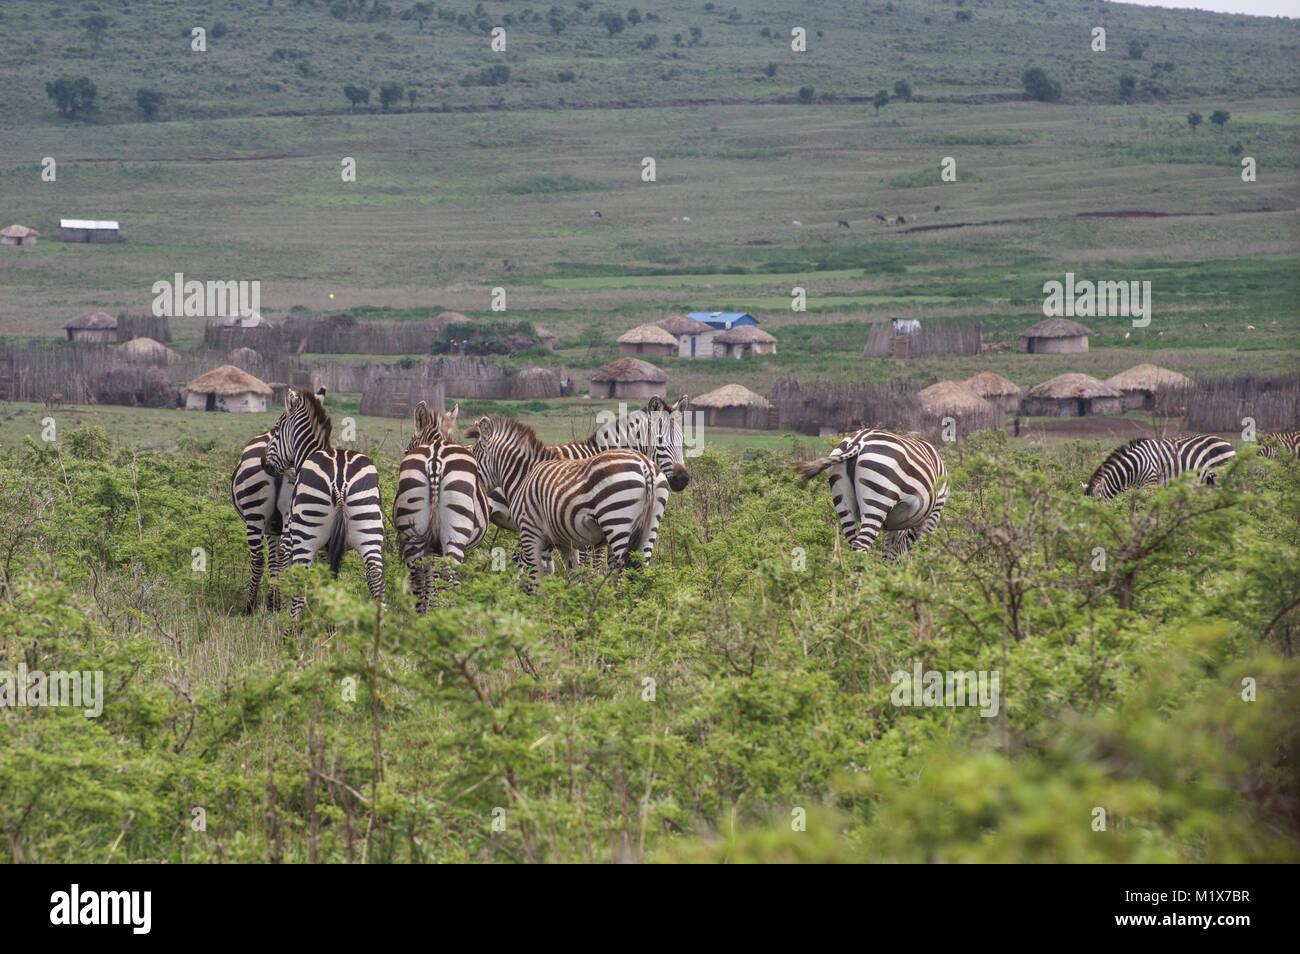 Zebras roaming freely in the Serengeti in northern Tanzania with acacia trees in the background in Nduti Serengetti - Stock Image